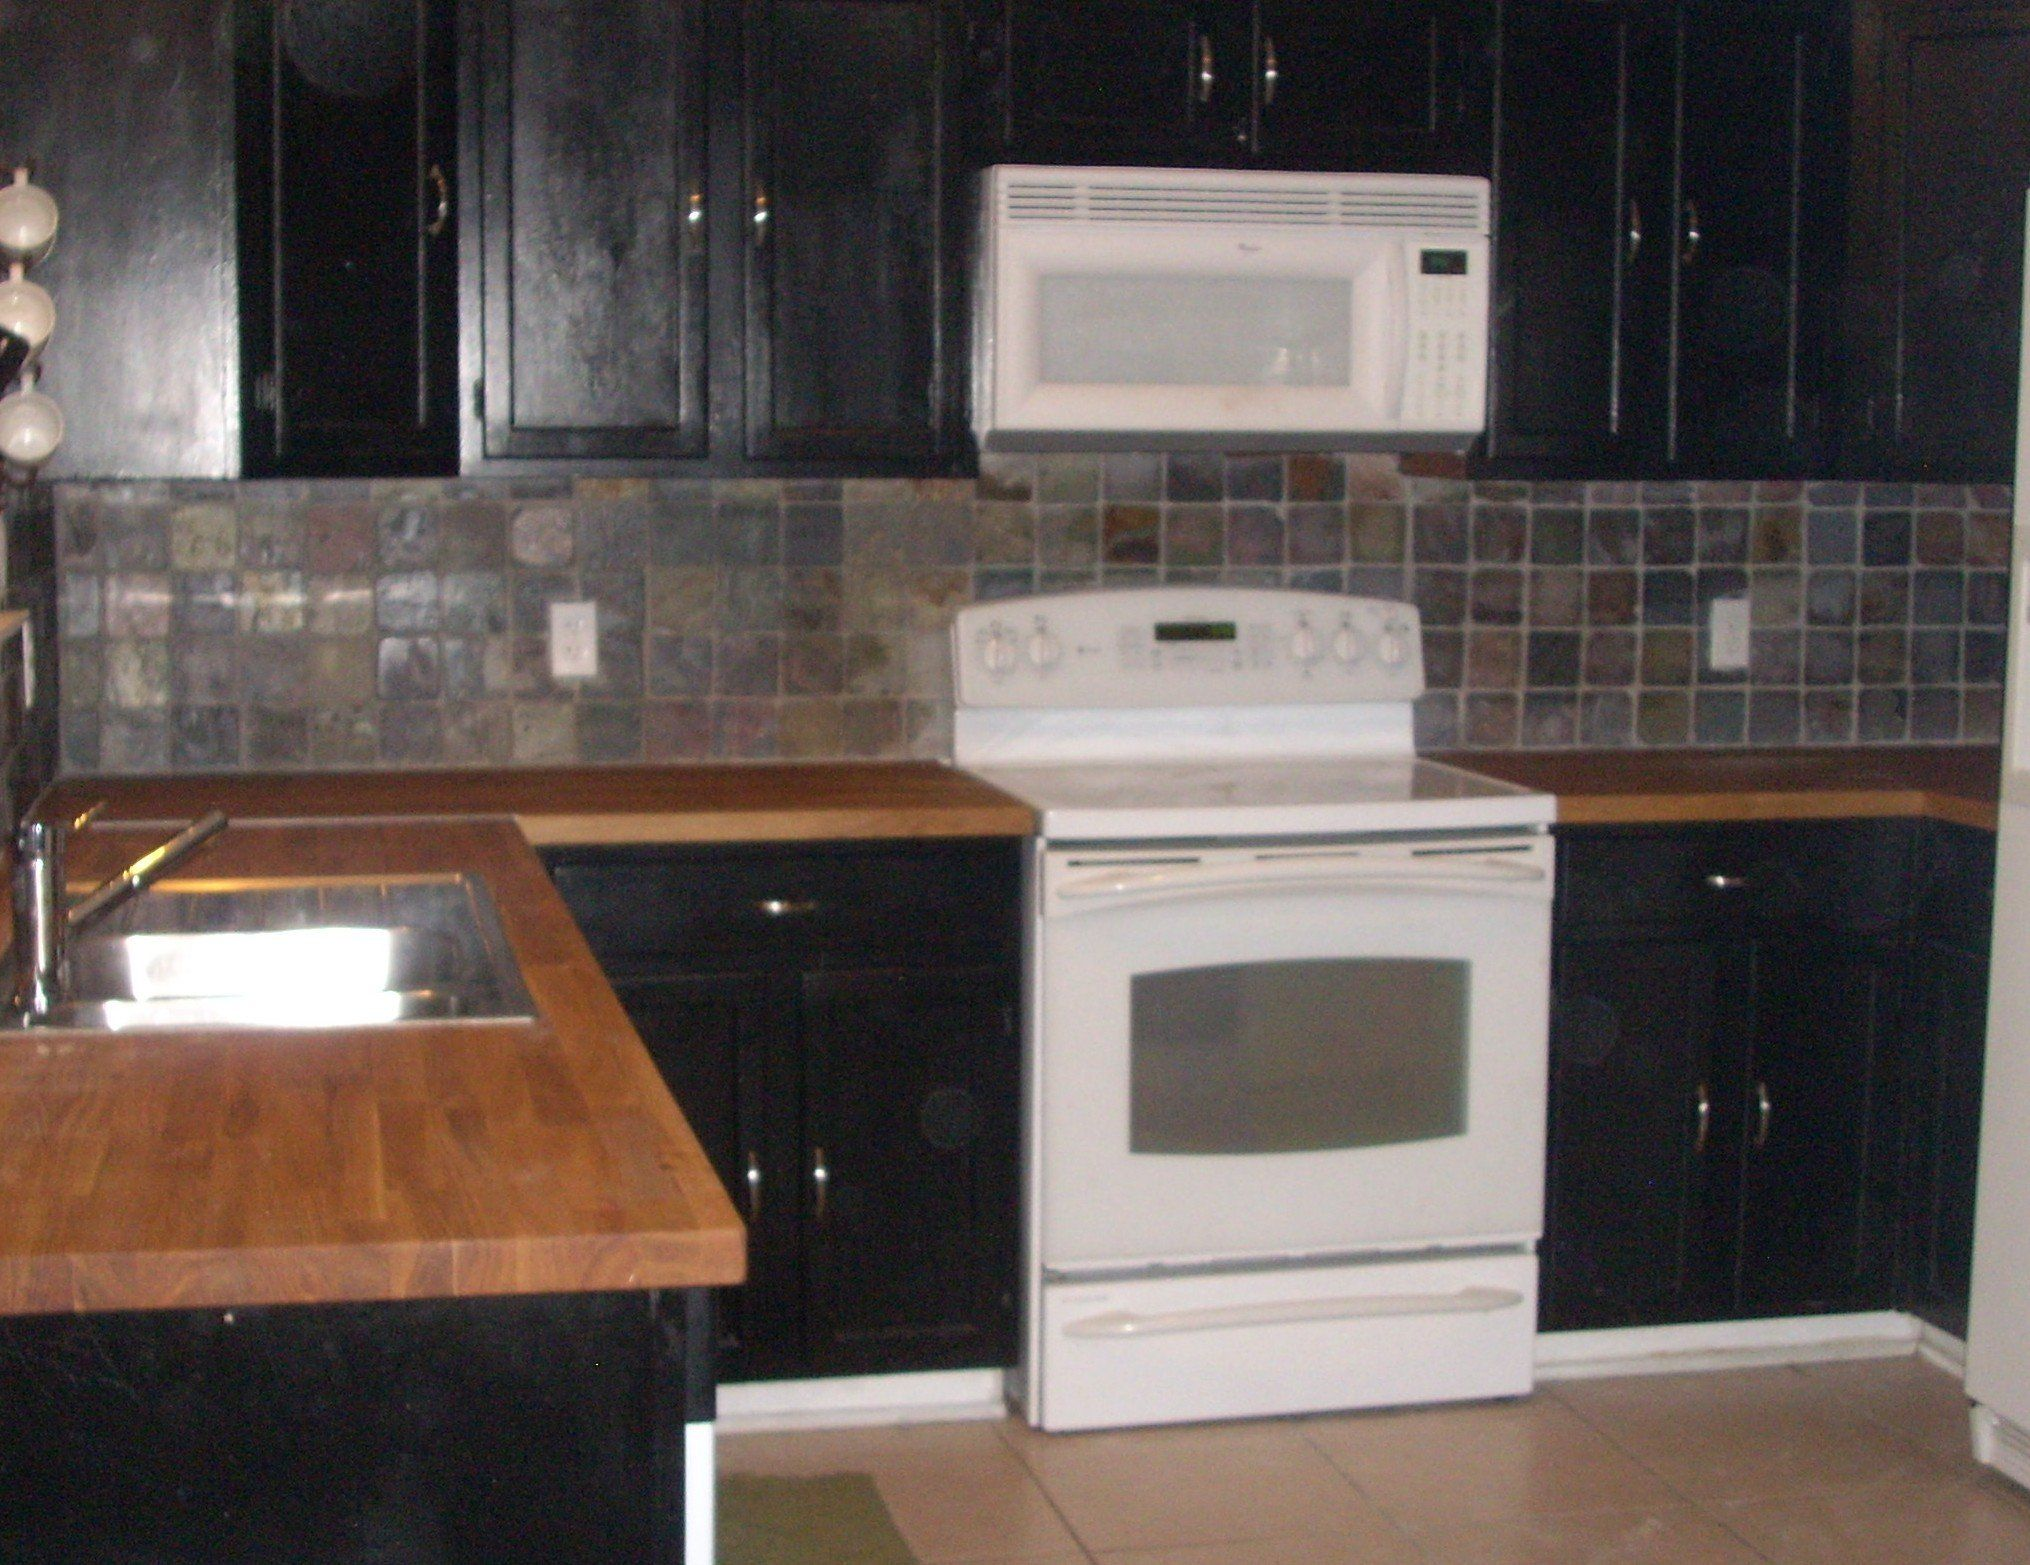 Furniture, White Microwave Above White Stove For Black Wooden ... on kitchen islands with wood countertops, kitchen backsplash ideas with black countertops, tile with wood countertops, kitchen backsplash ideas laminate countertops, black kitchen cabinets with wood countertops,